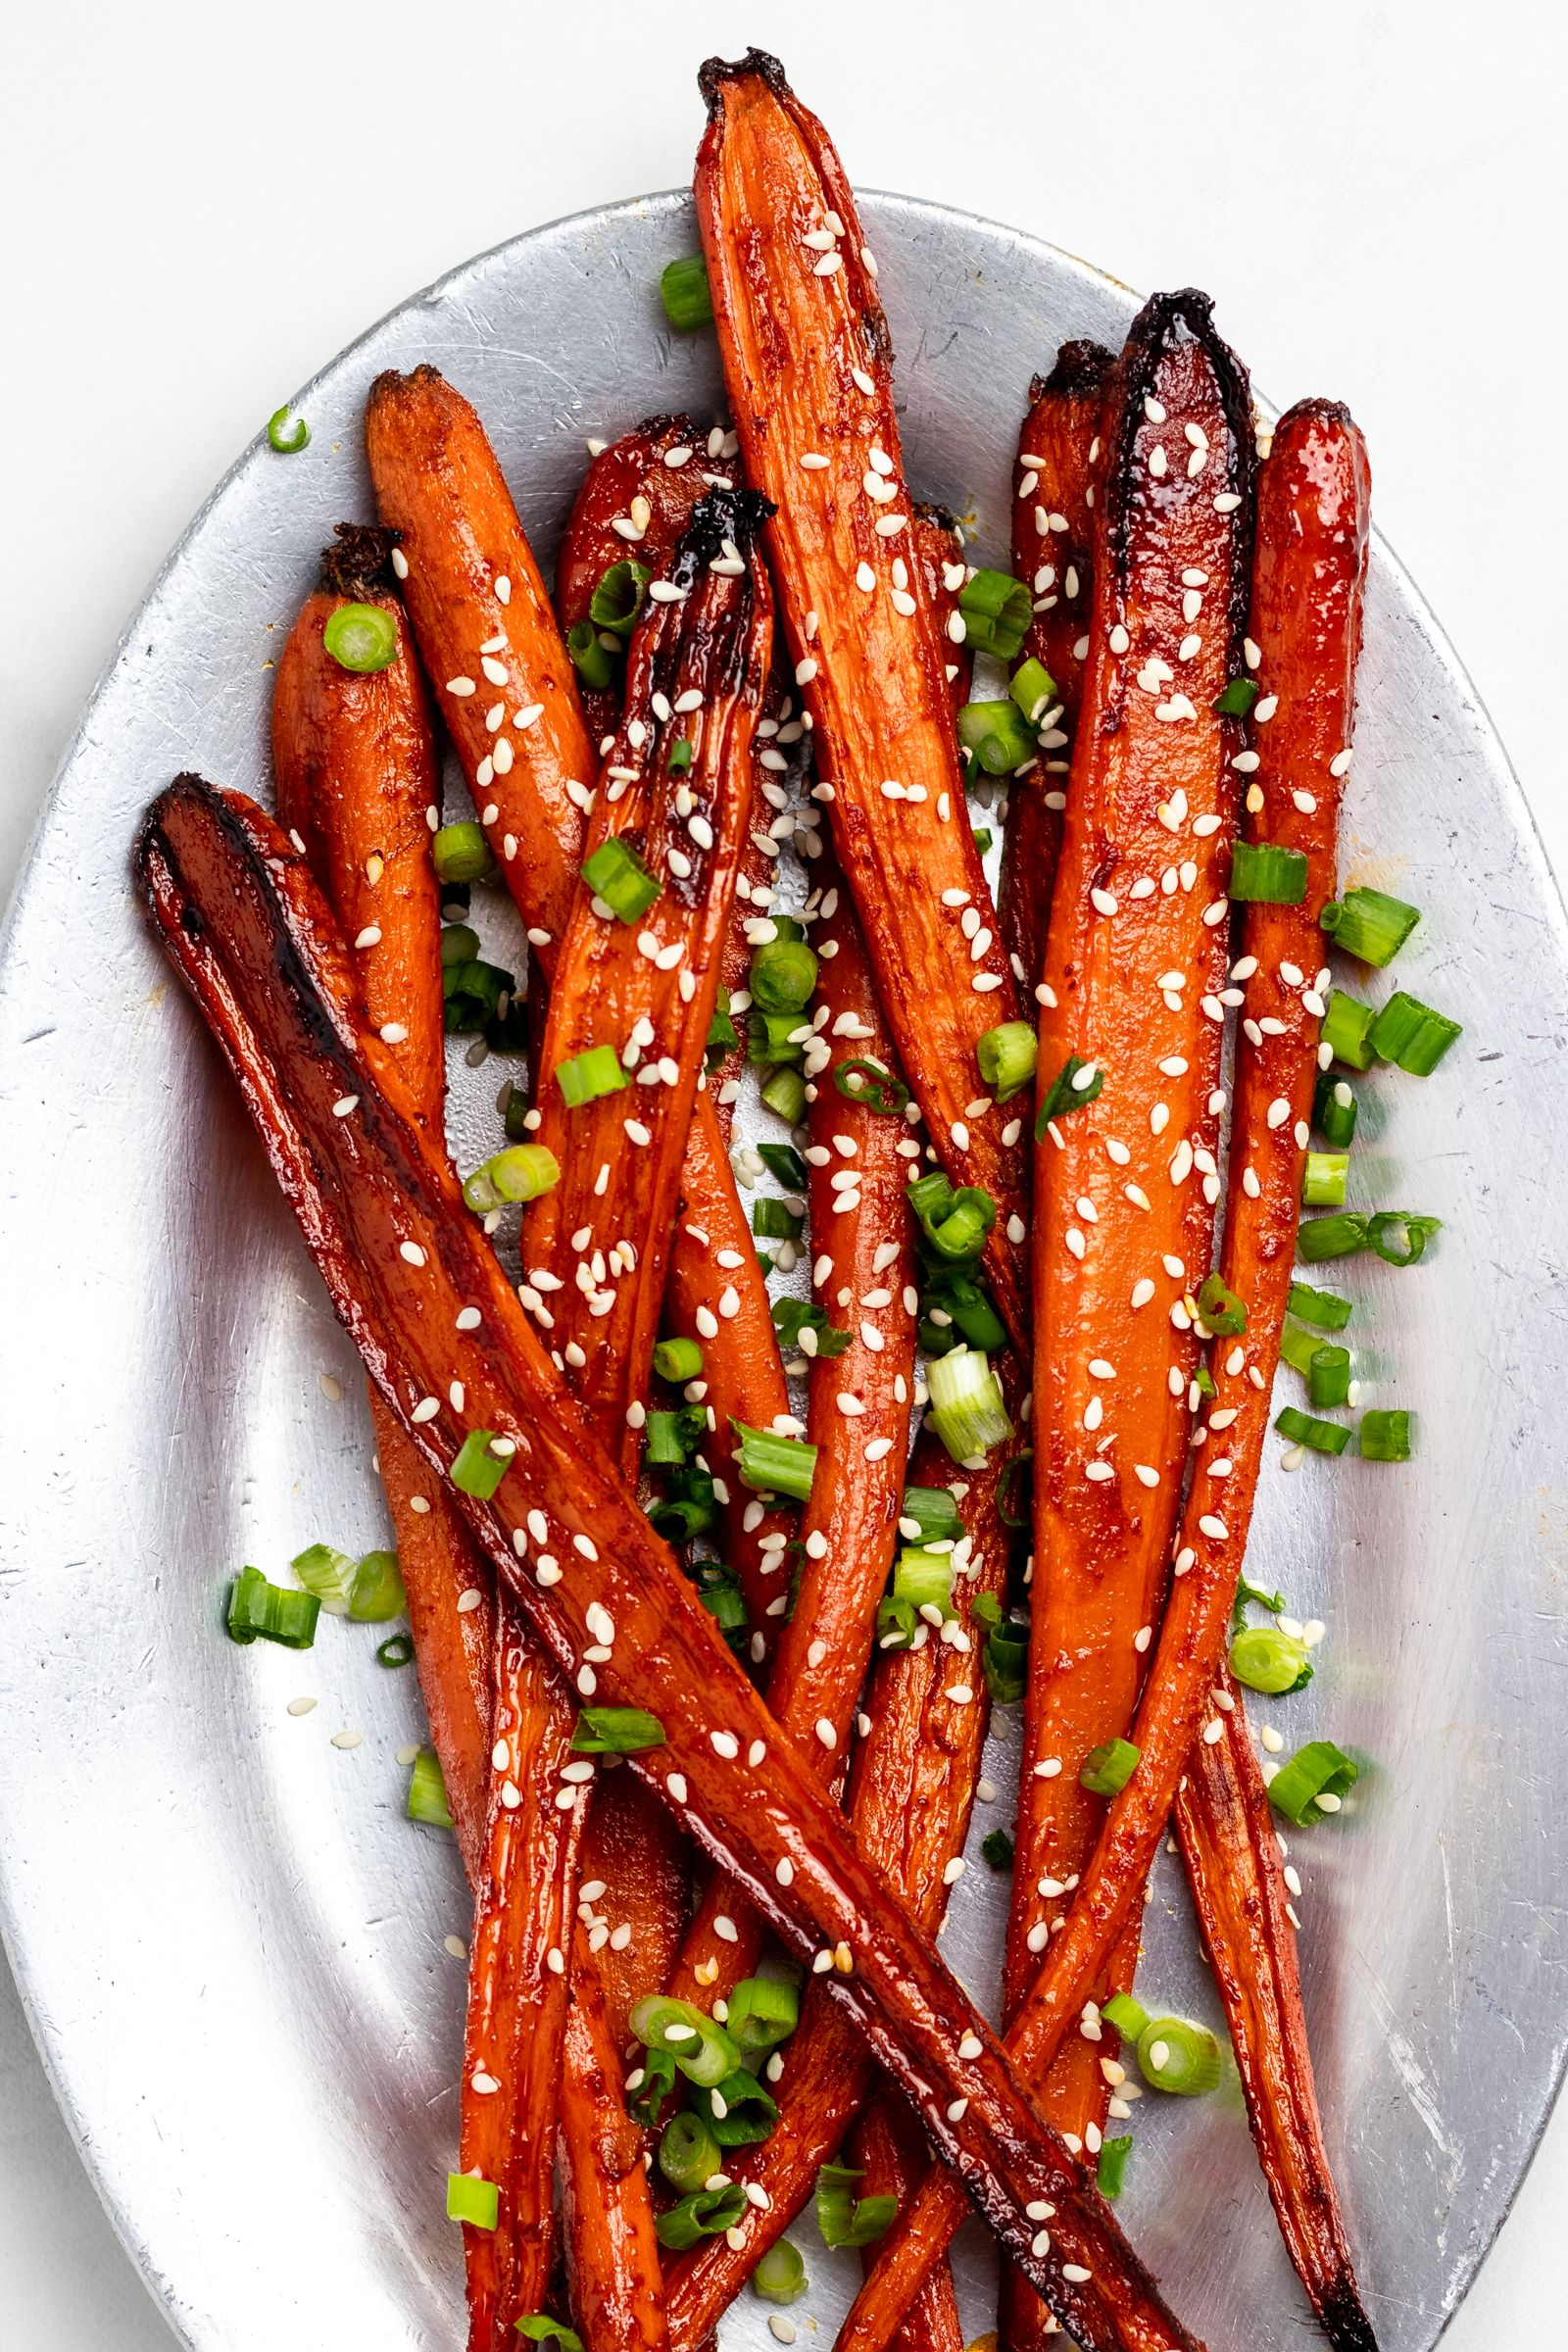 Roasted Carrots with Gochujang